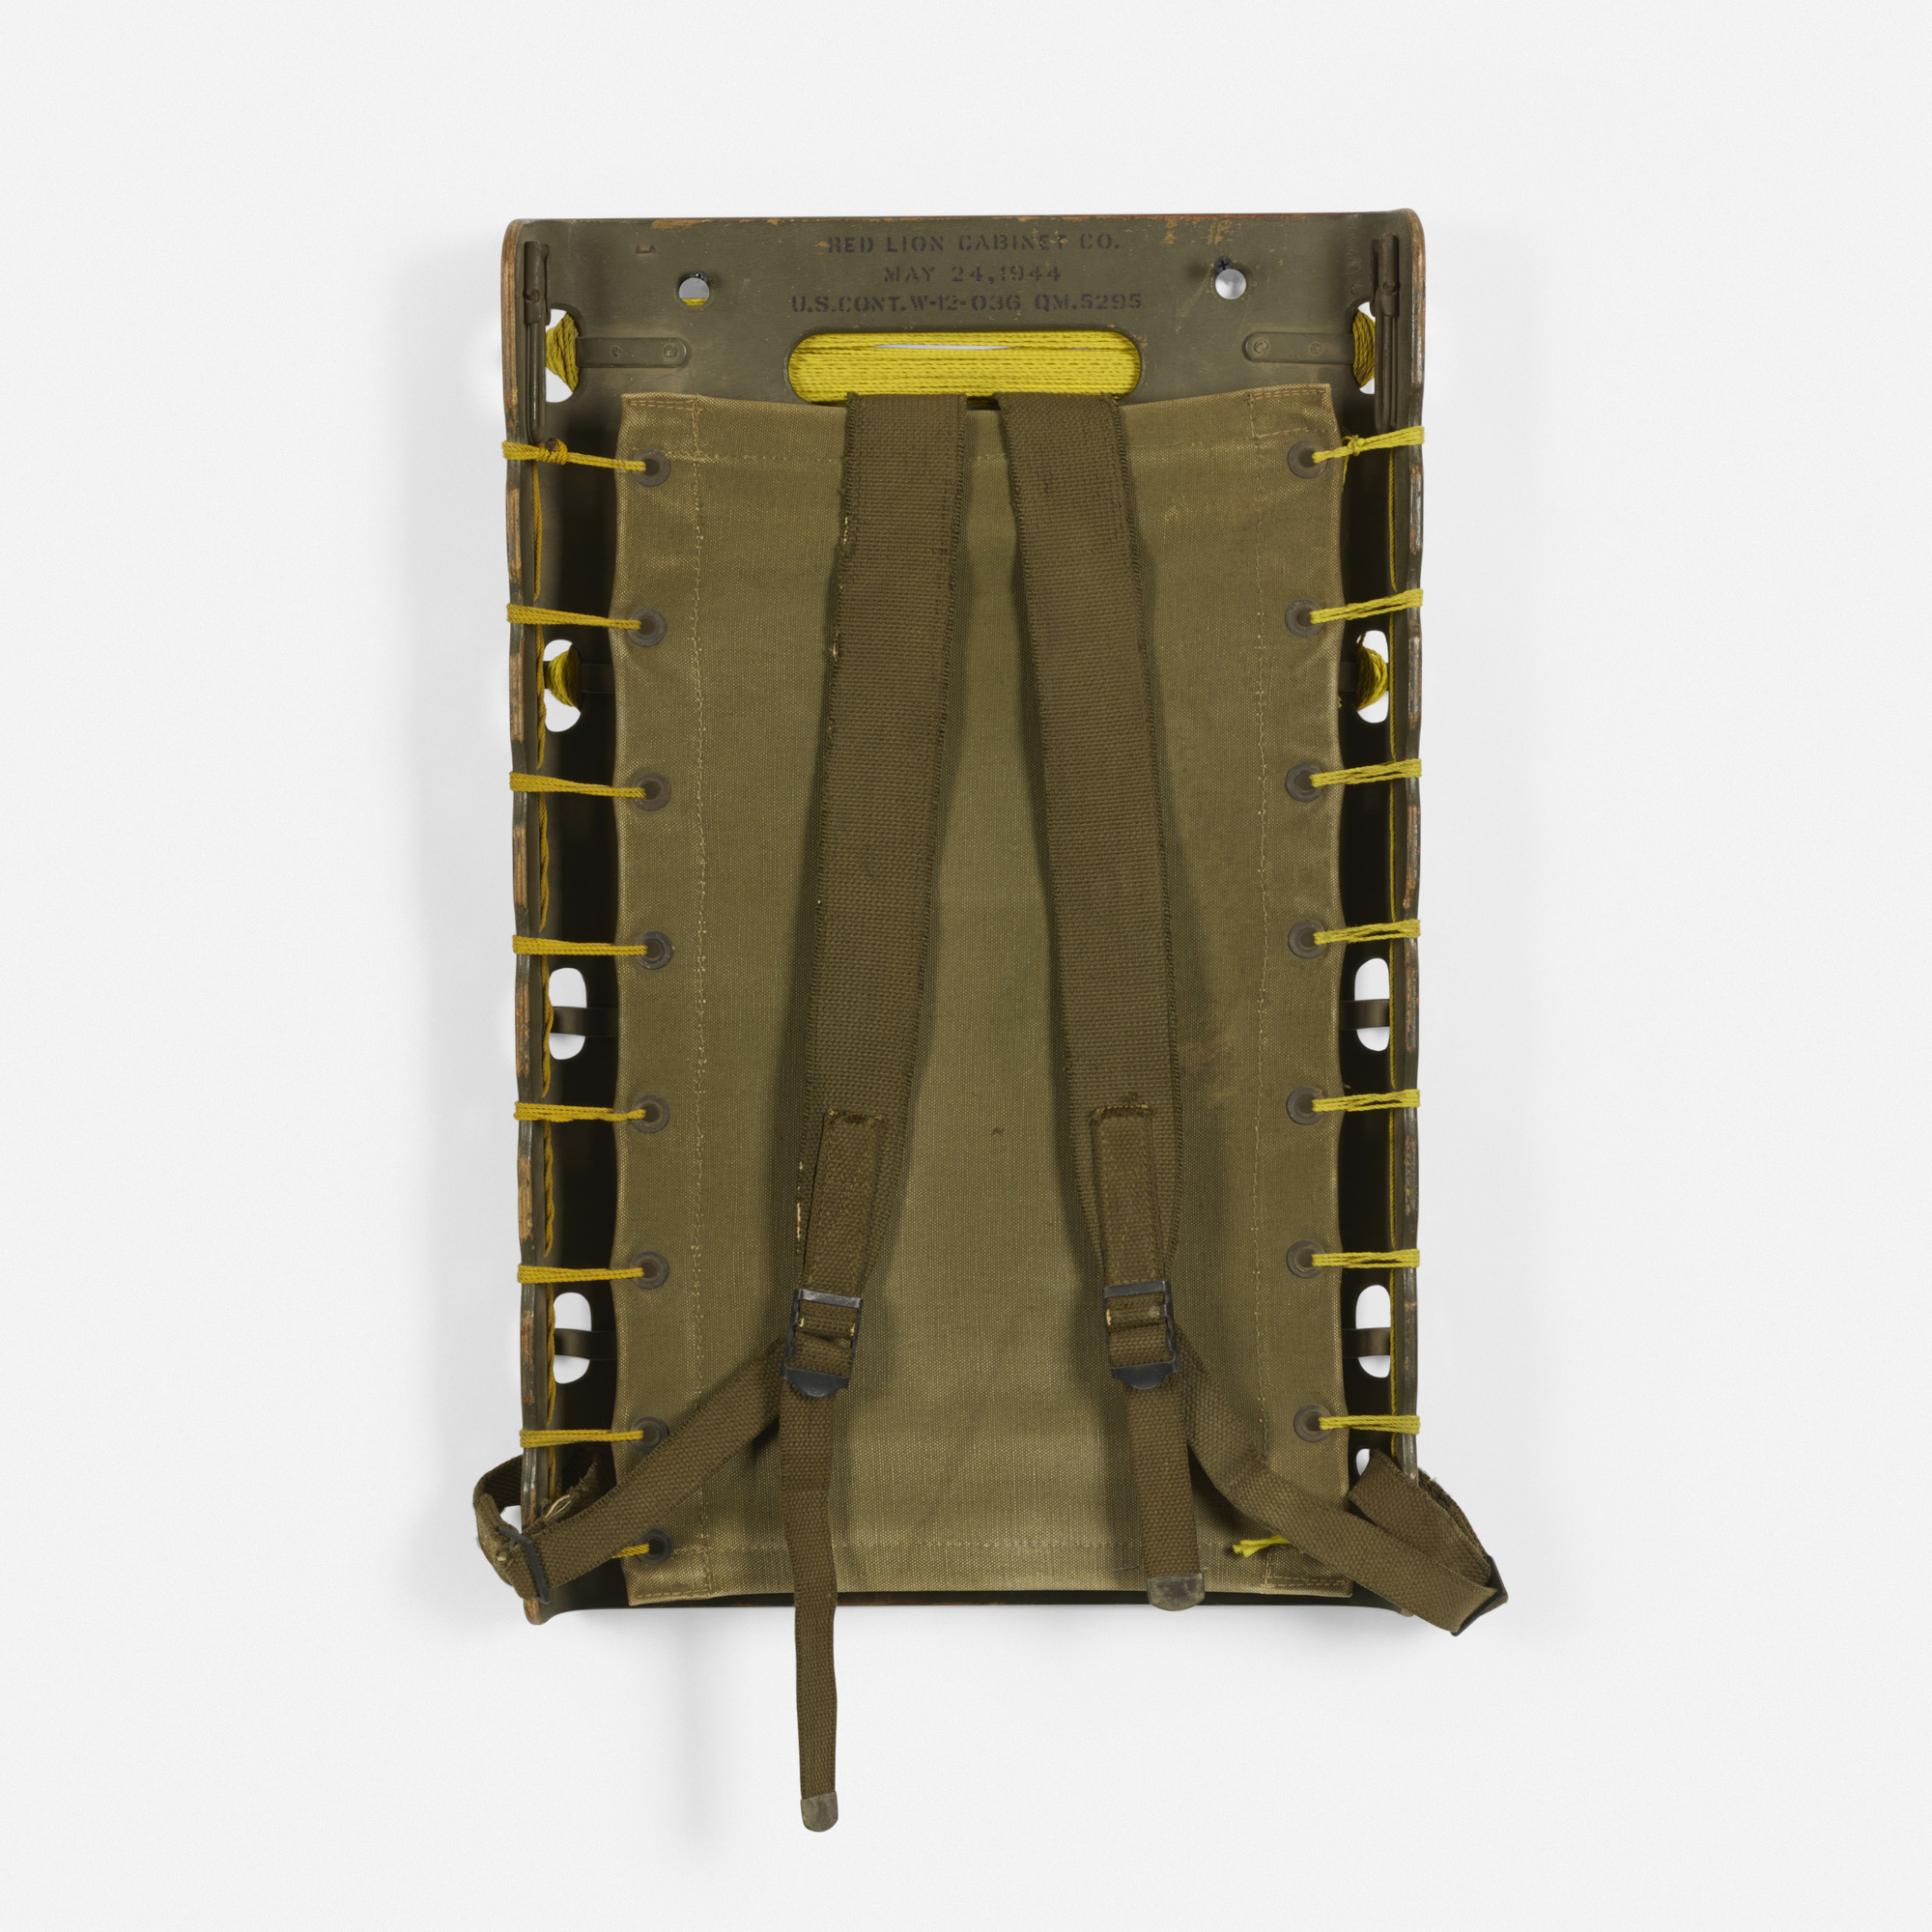 121: Red Lion Cabinet Co. / US Army backpack frame (1 of 3)